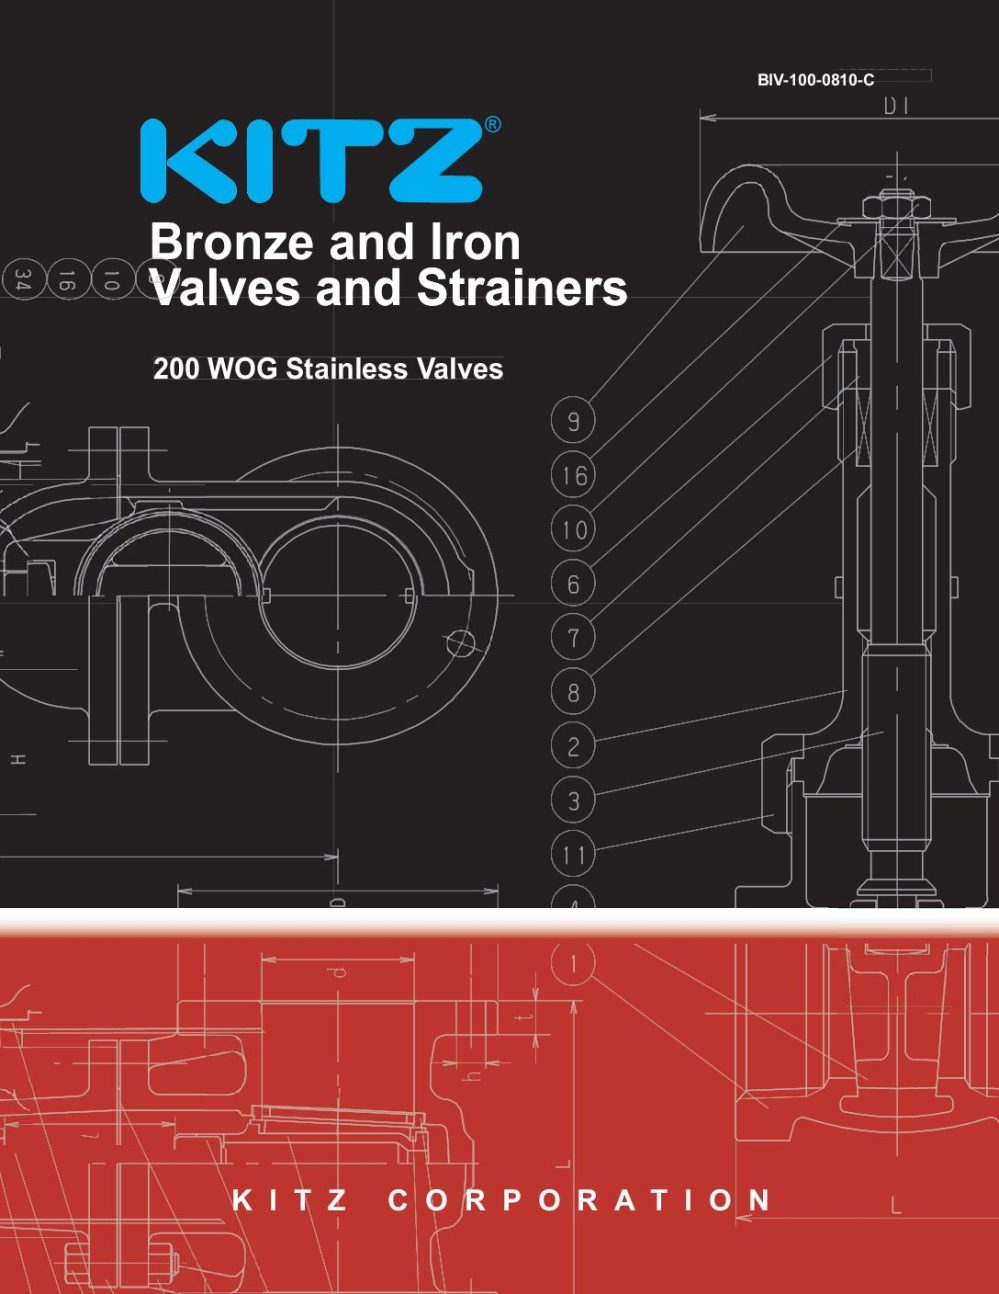 medium resolution of kitz bronze and iron valves and strainers